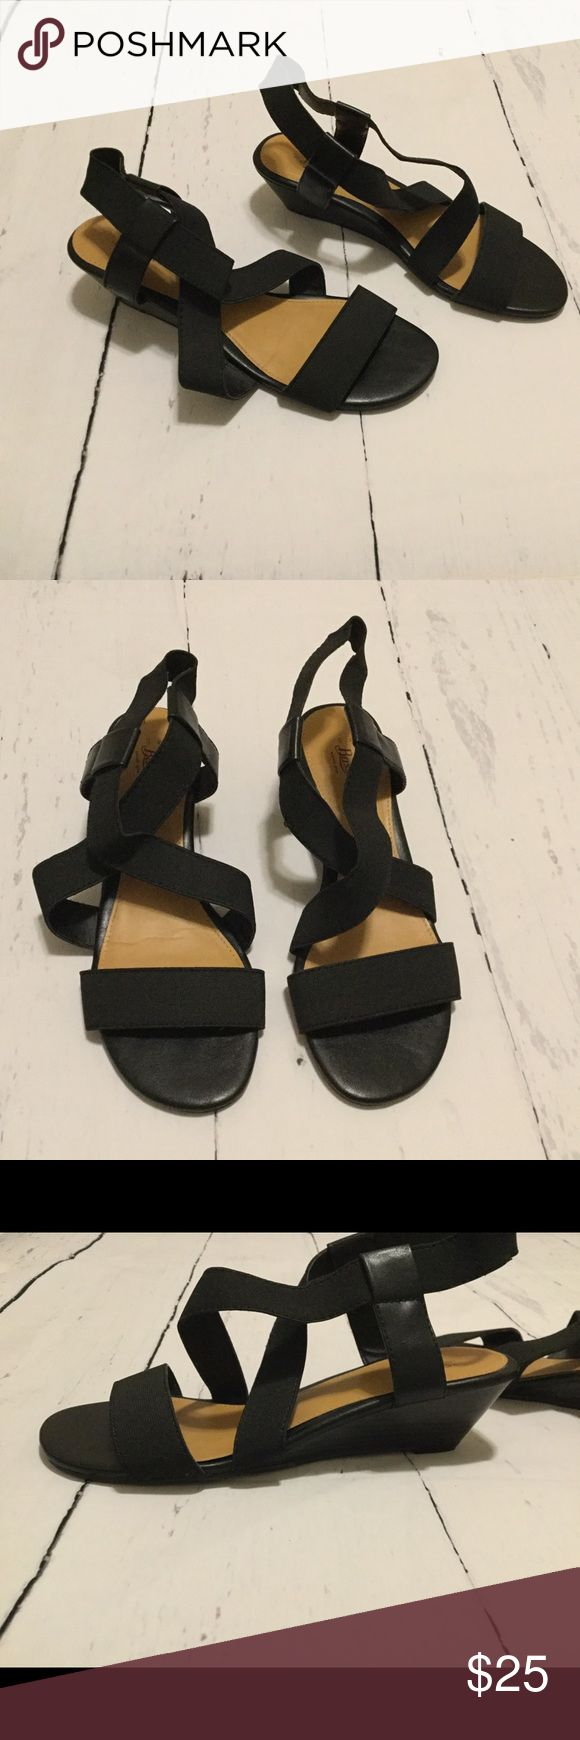 "Low Wedge Slingback Sandals In good condition. Wedge height is 2"". Bass Shoes Sandals"